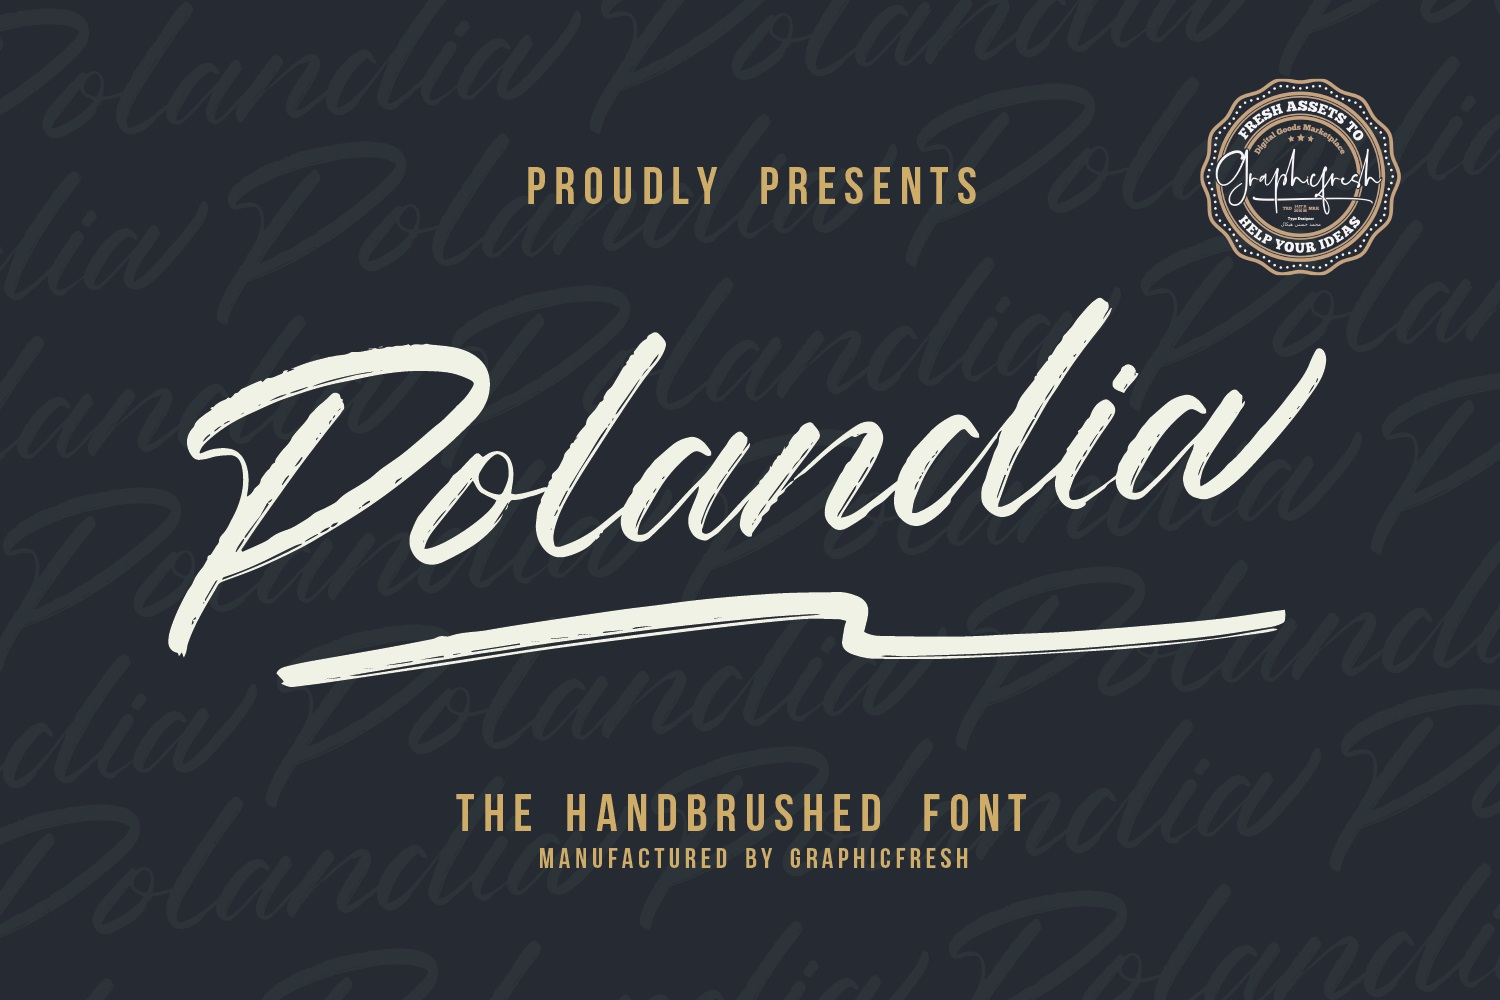 Polandia - The Handbrushed Font example image 1